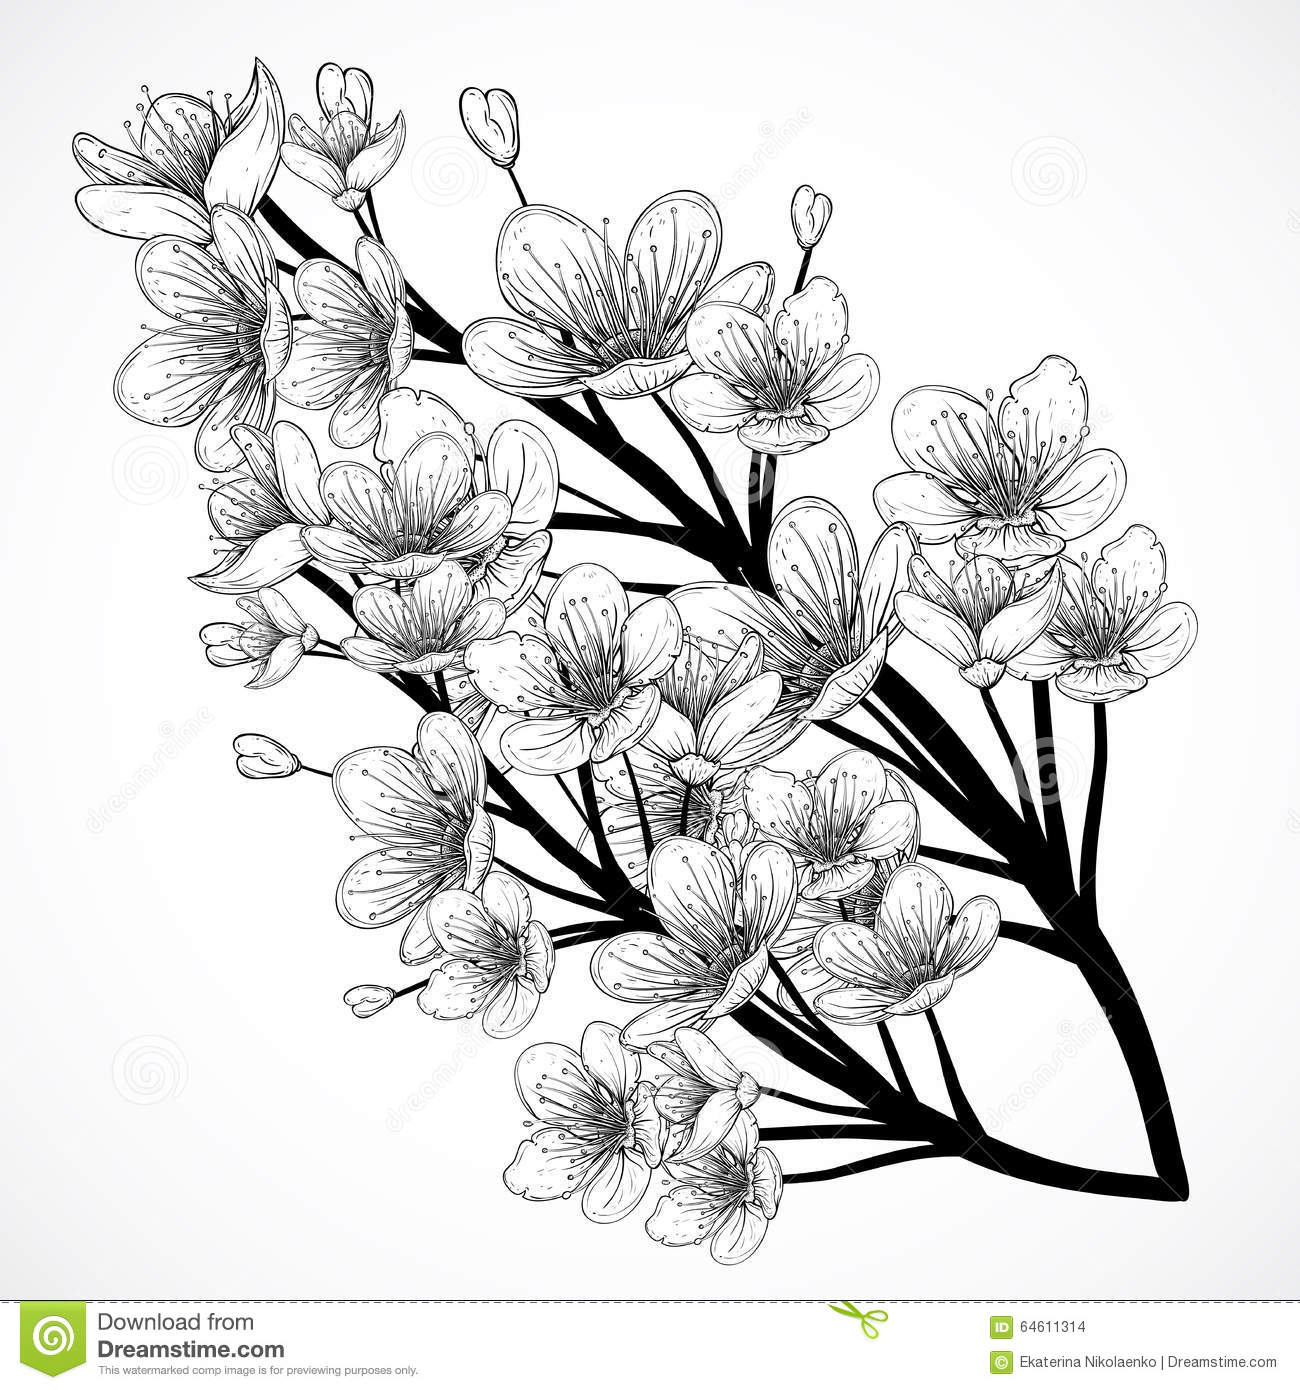 Uncategorized Cherry Blossom Tree Sketch cherry tree blossom vintage black and white hand drawn vector illustration in sketch style